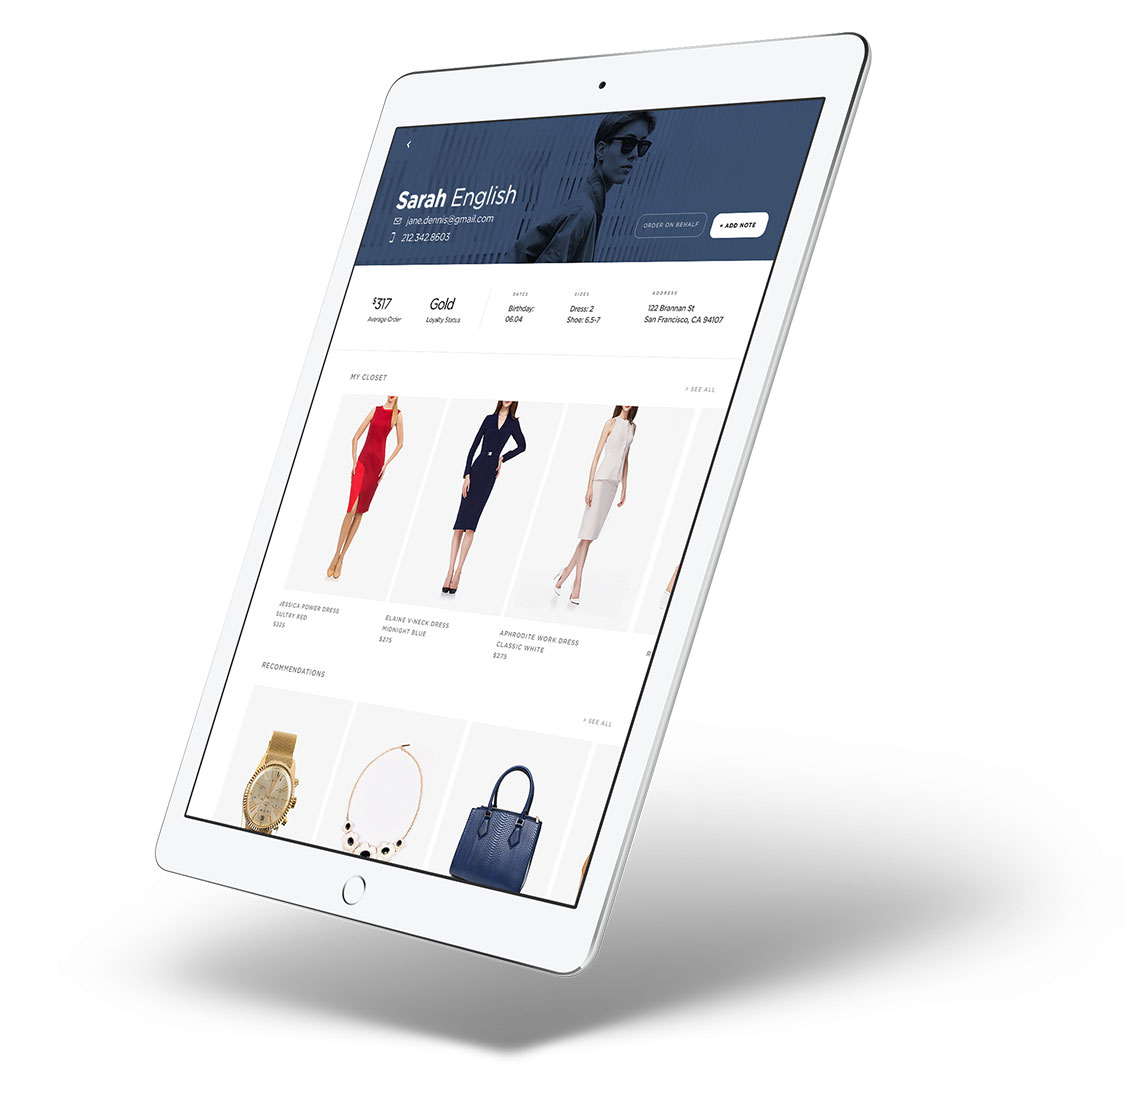 PredictSpring Clienteling Store Apps - Example of A Client Profile Page